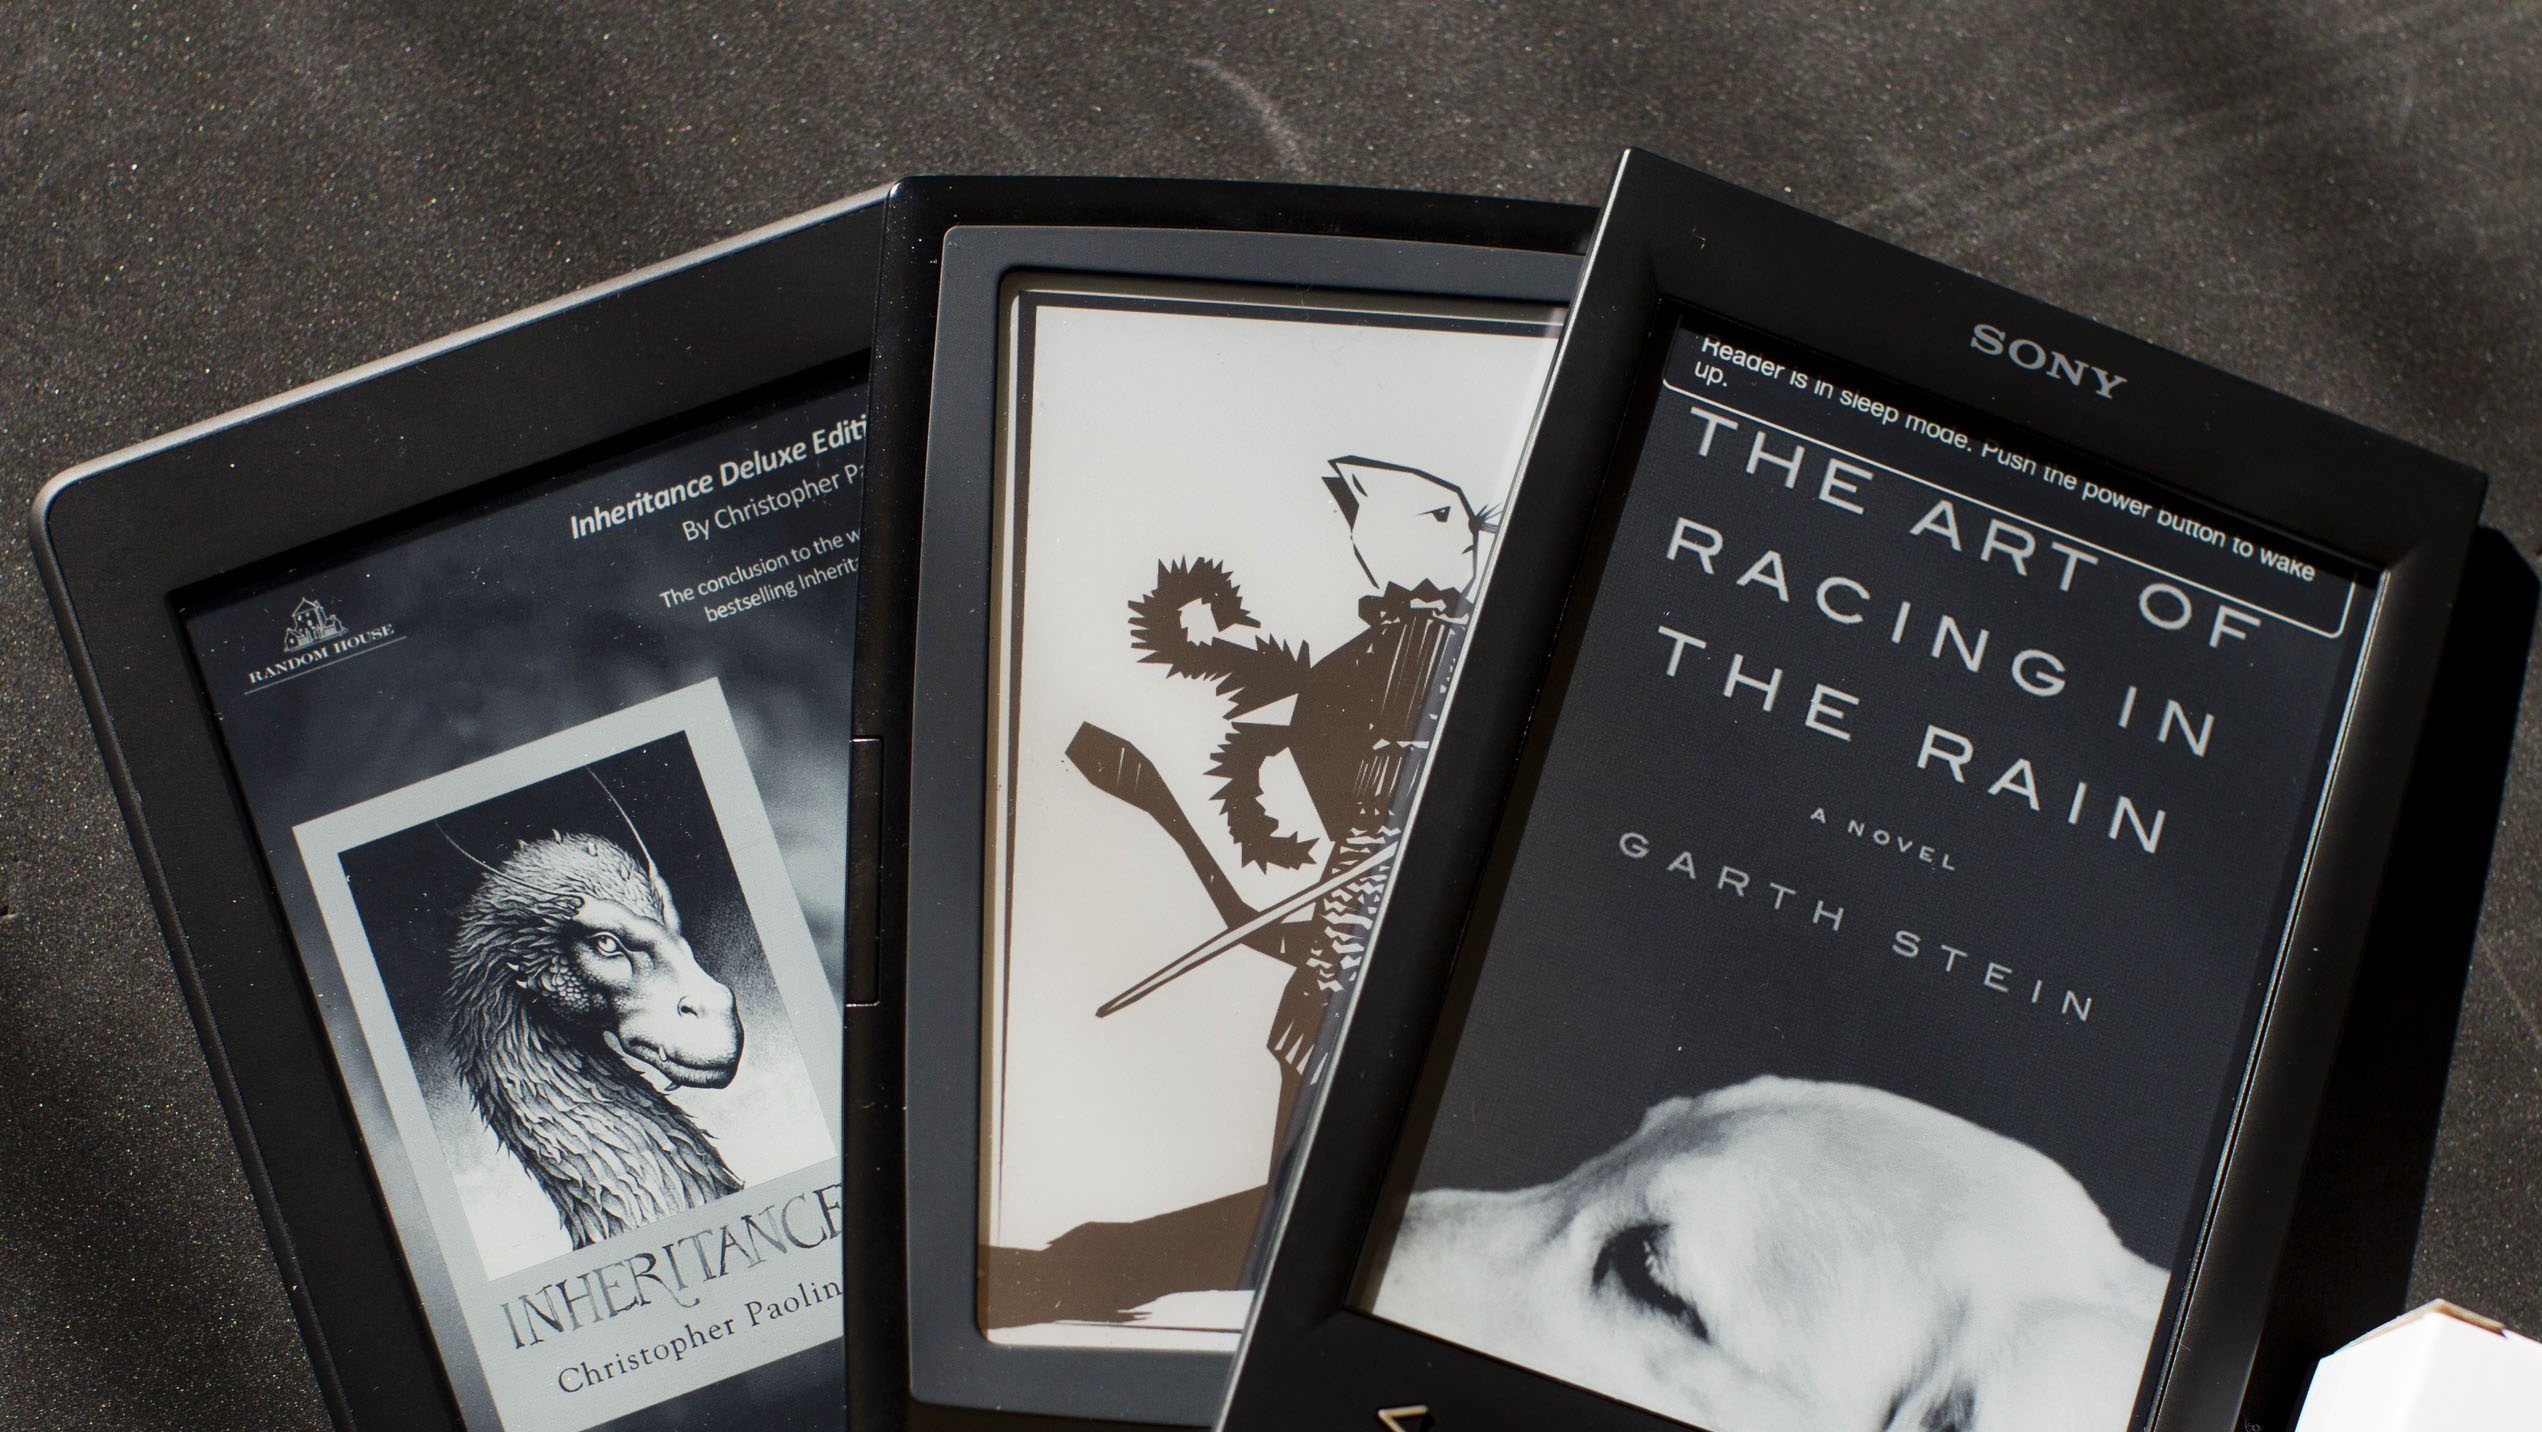 An Amazon Kindle (L-R), a Bookeen Cybook Odyssey, and a Sony Reader, all of which use technology developed by E Ink, are pictured at E Ink Corporation in Cambridge, Massachusetts October 25, 2012. Amidst our growing love affair with the tablet, spare a thought for its increasingly shelfbound sibling: the e-reader. Take Taiwan's E Ink Holdings Inc, which makes most of the monochrome displays for devices such as Amazon.com Inc's Kindle and Barnes & Noble Inc's Nook. After five years of heady growth during which shipments rose 100-fold, it got a jolt at the end of 2011 when monthly revenues dropped 91 percent in two months. E-readers initially benefited from their reflective displays, which can be read in sunlight and require very little power. But the success of Apple Inc's iPad, improved backlit displays, power-saving technologies and new smaller tablets all point to one thing: the e-reader has become a transitional technology. Picture taken October 25, 2012. To match Analysis EREADERS-FUTURE/      REUTERS/Dominick Reuter  (UNITED STATES - Tags: SCIENCE TECHNOLOGY BUSINESS) - RTR39PLH